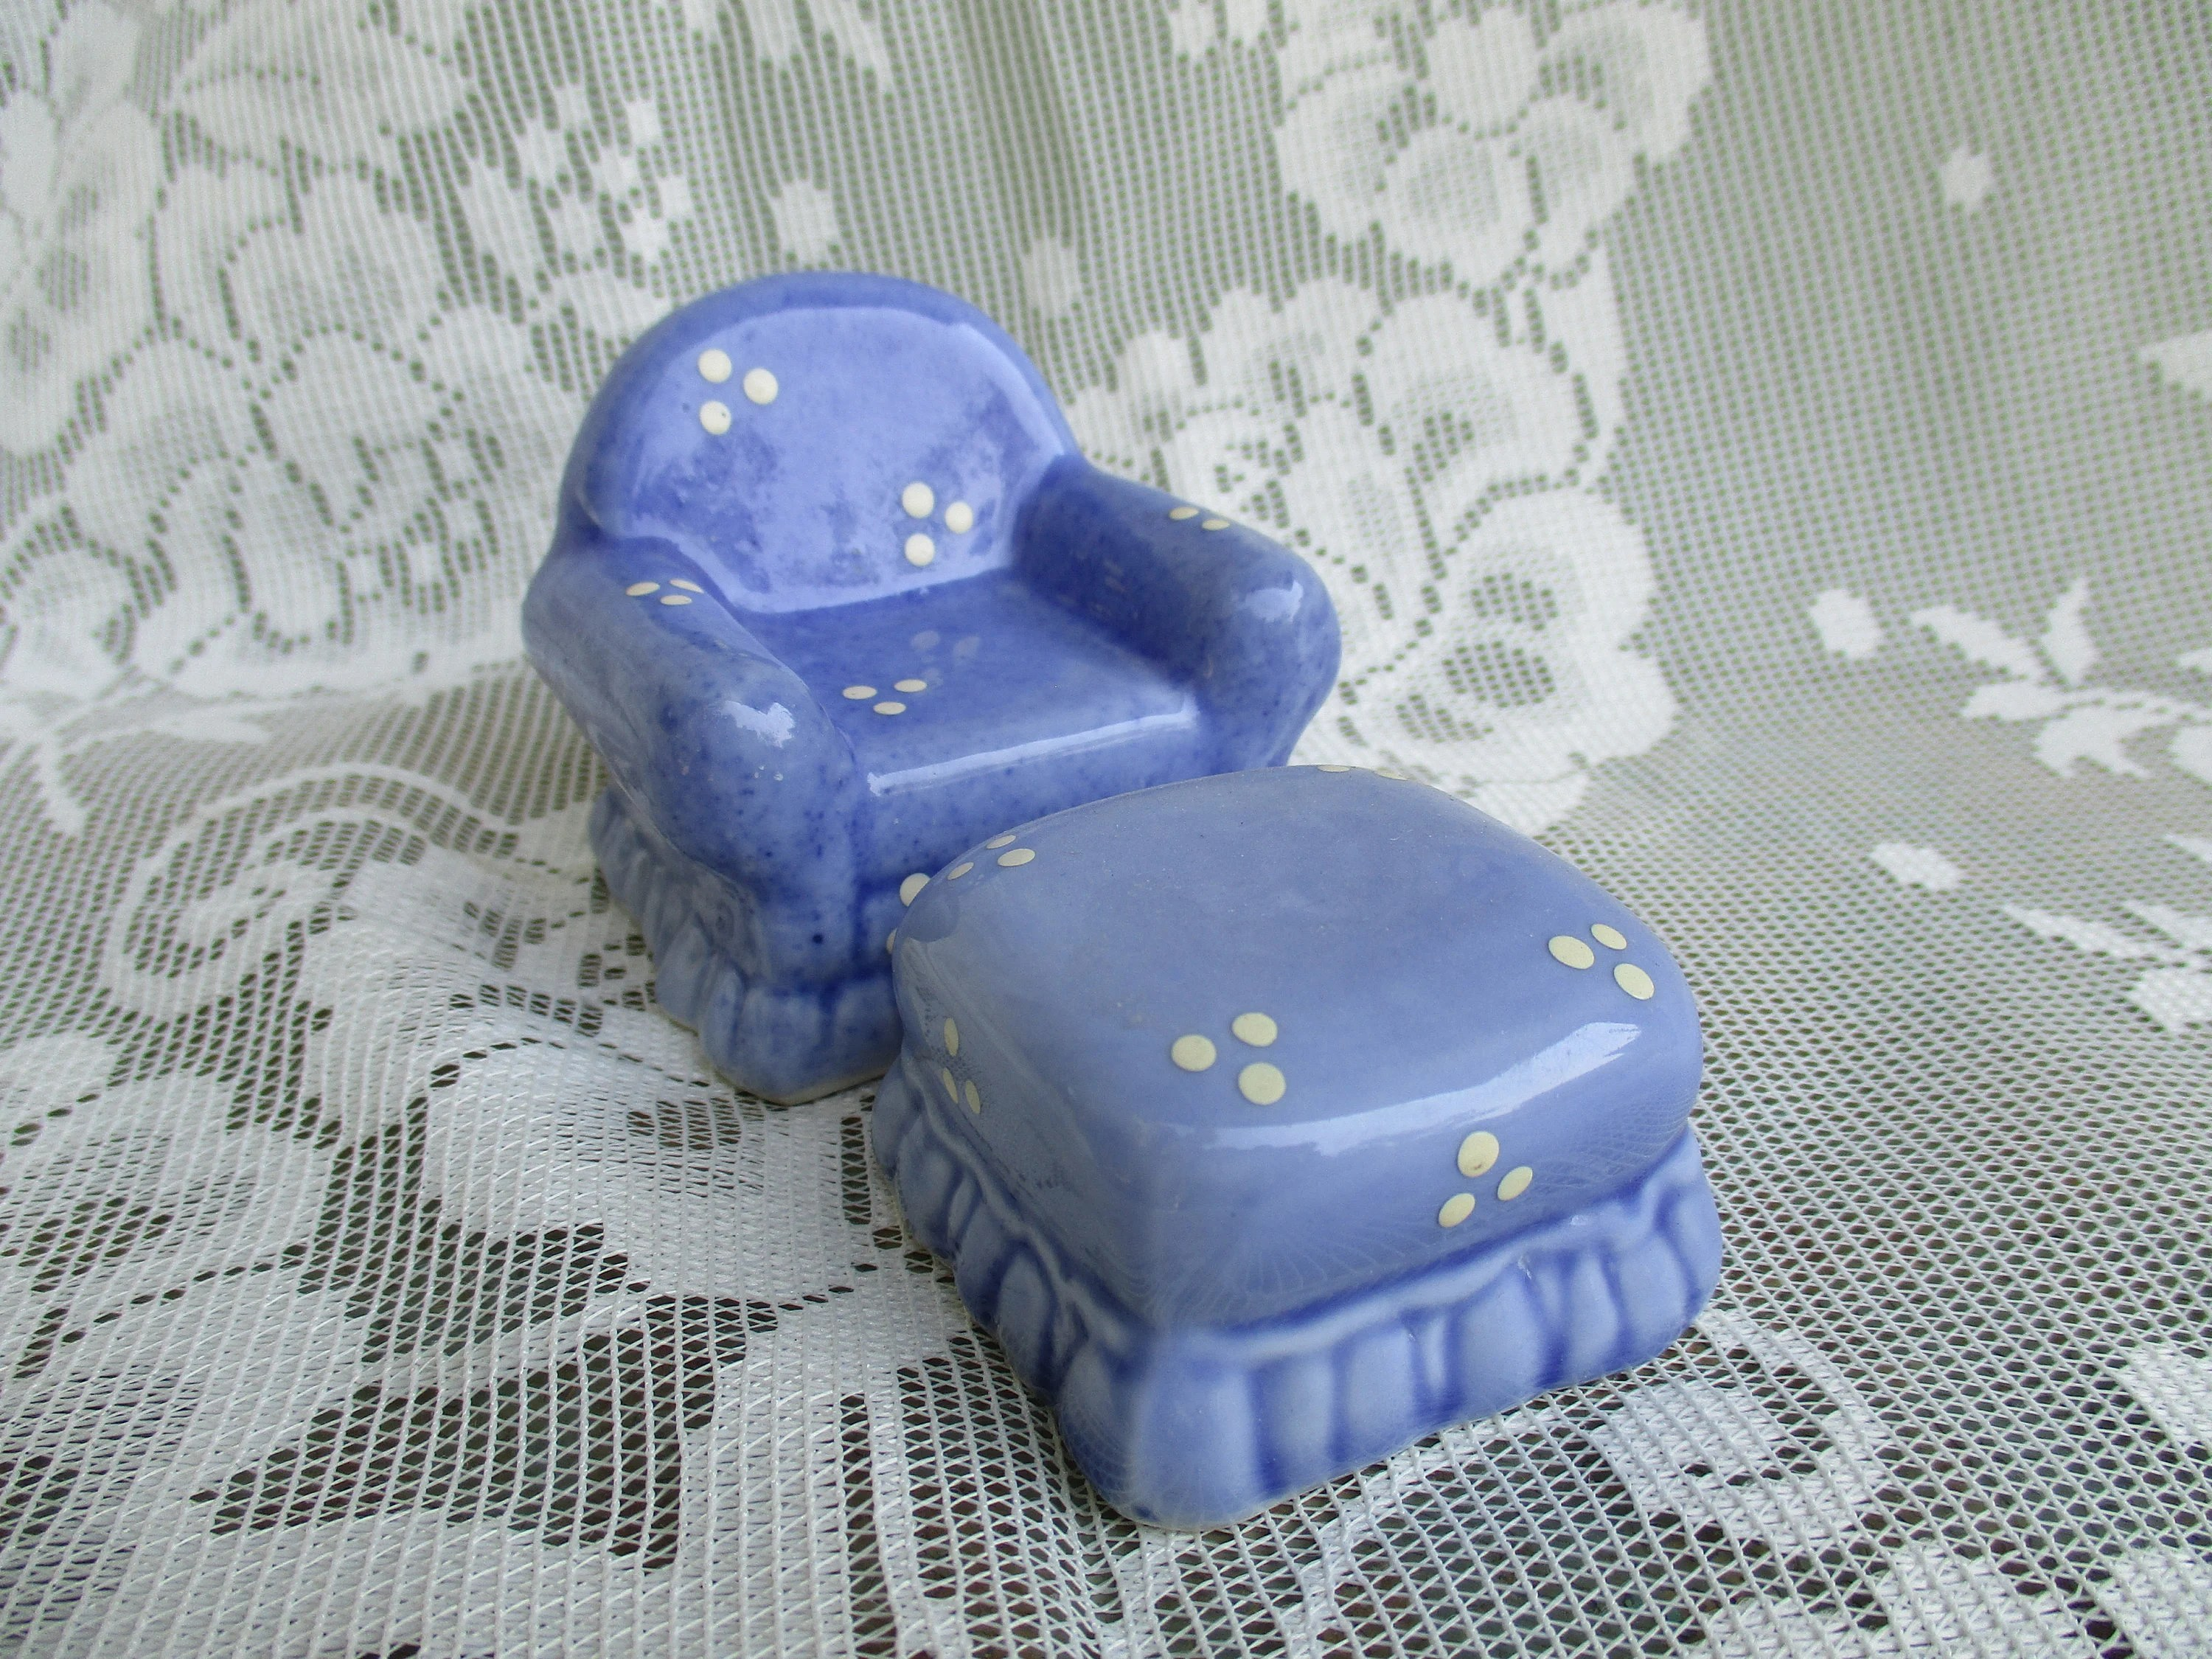 Overstuffed Chair And Ottoman Vintage Miniature Overstuffed Chair And Ottoman Porcelain Blue With White Dots Dollhouse Doll Furniture 2 Piece Set